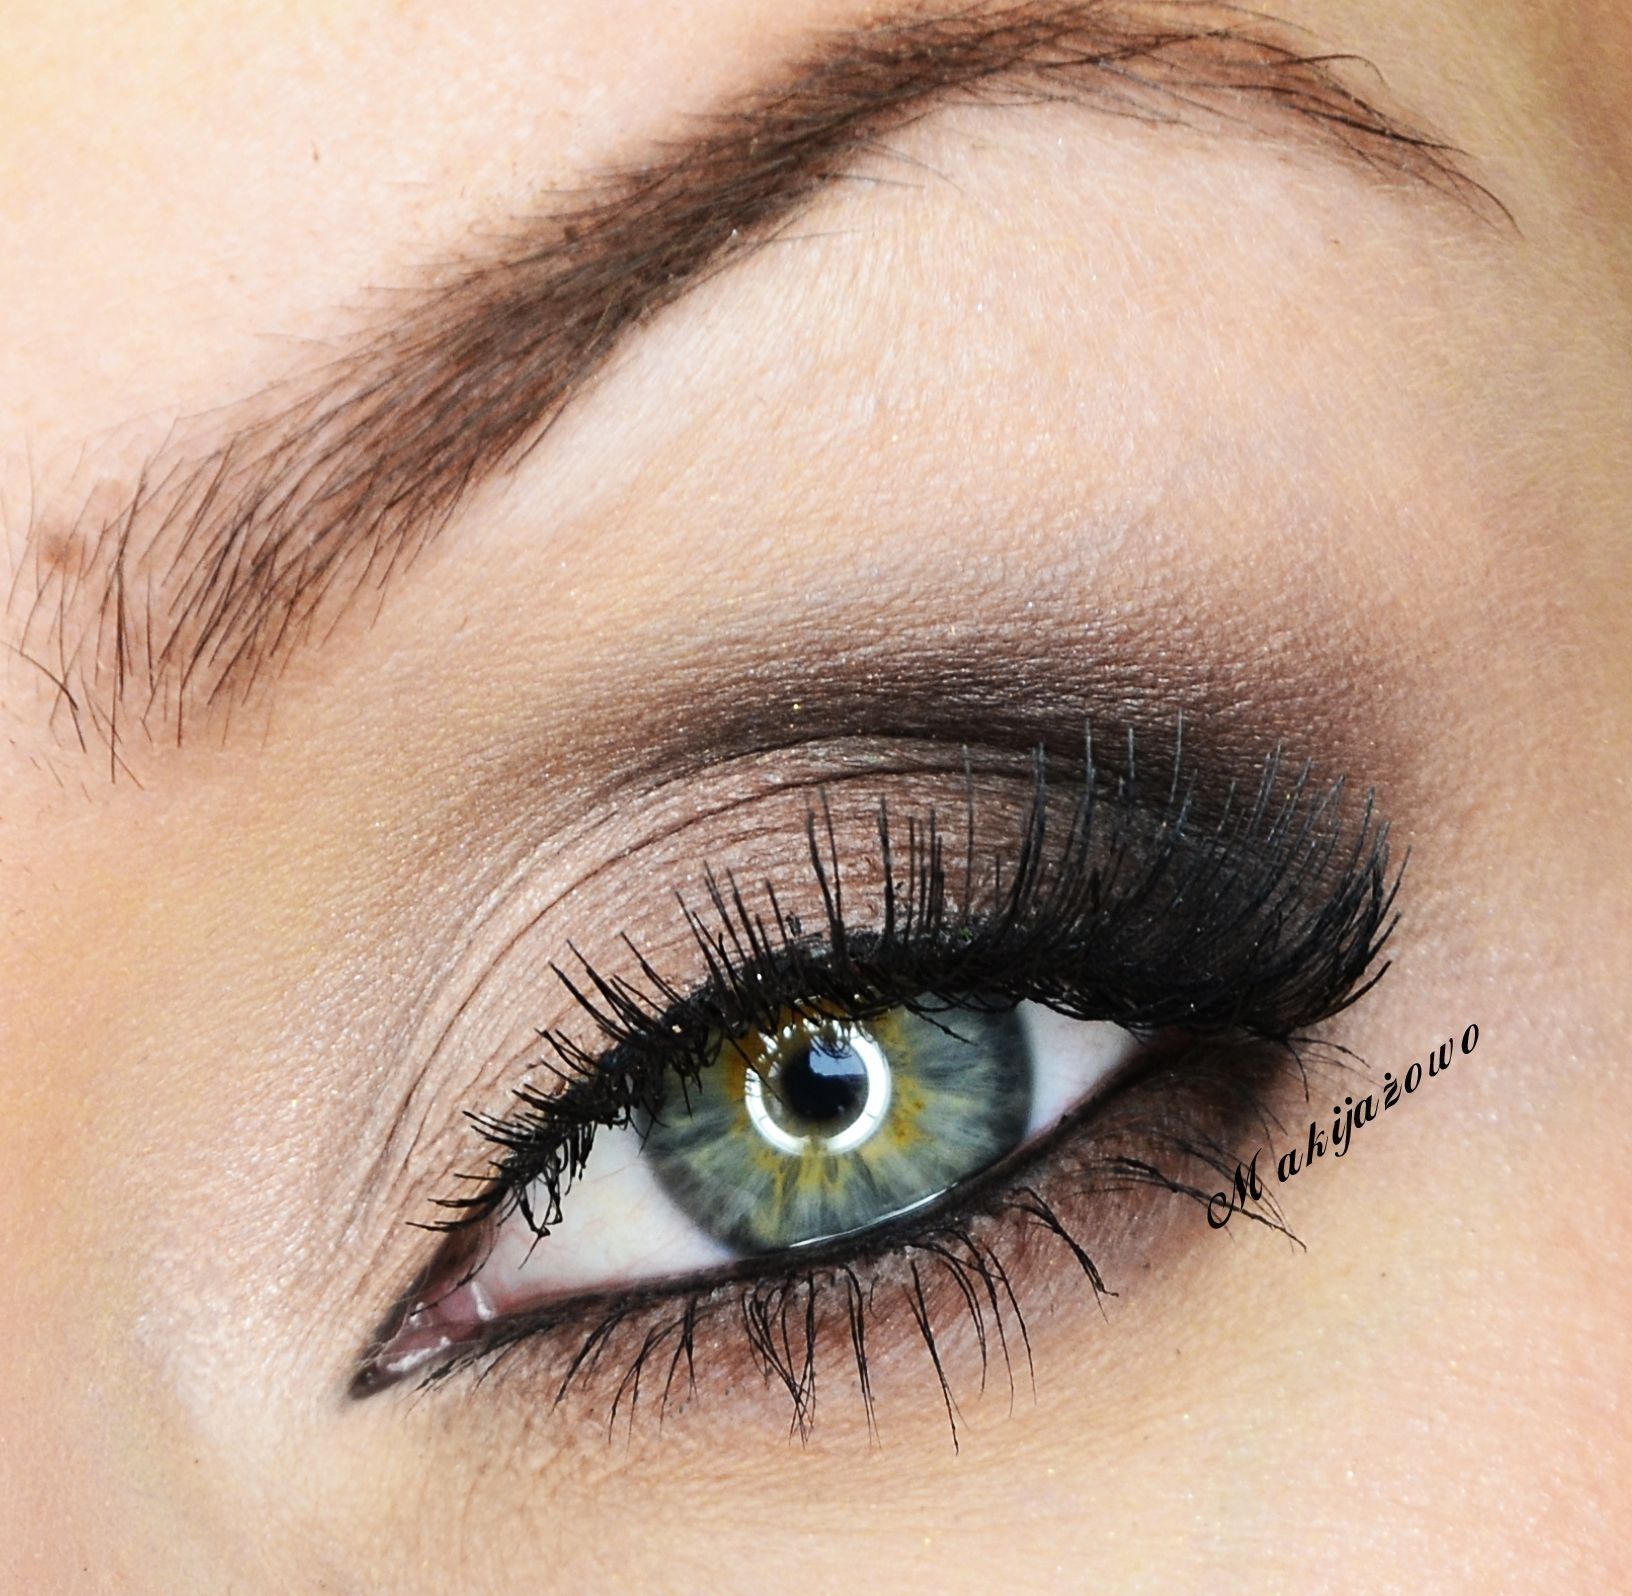 Finally: A Smoky Eye For Girls Who Hate Smoky Eyes | 'eye' Love It intended for How To Apply Smokey Eyeshadow For Hazel Eyes